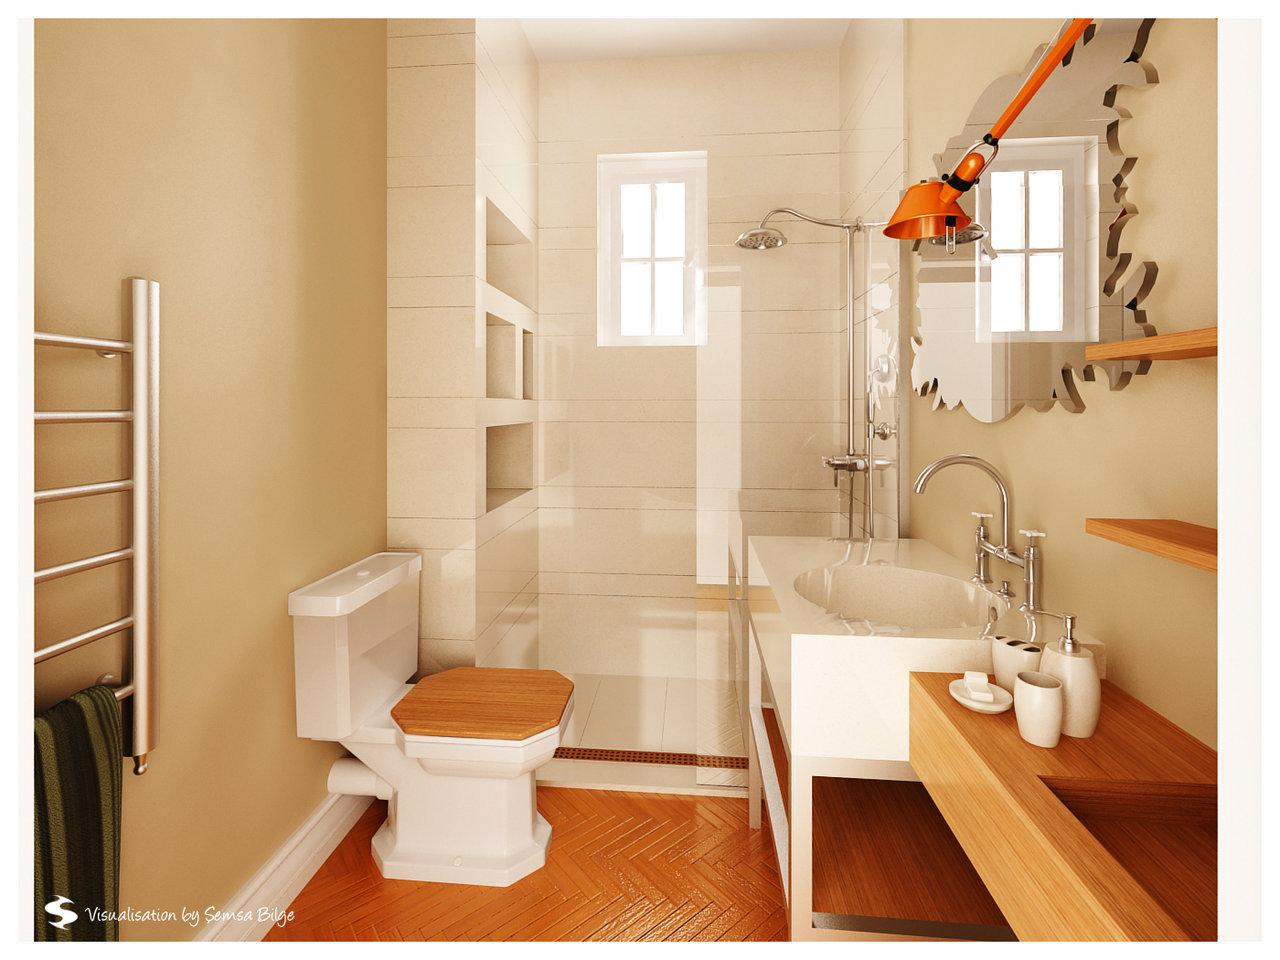 and cheerful images for the small bathroom ikea bathroom